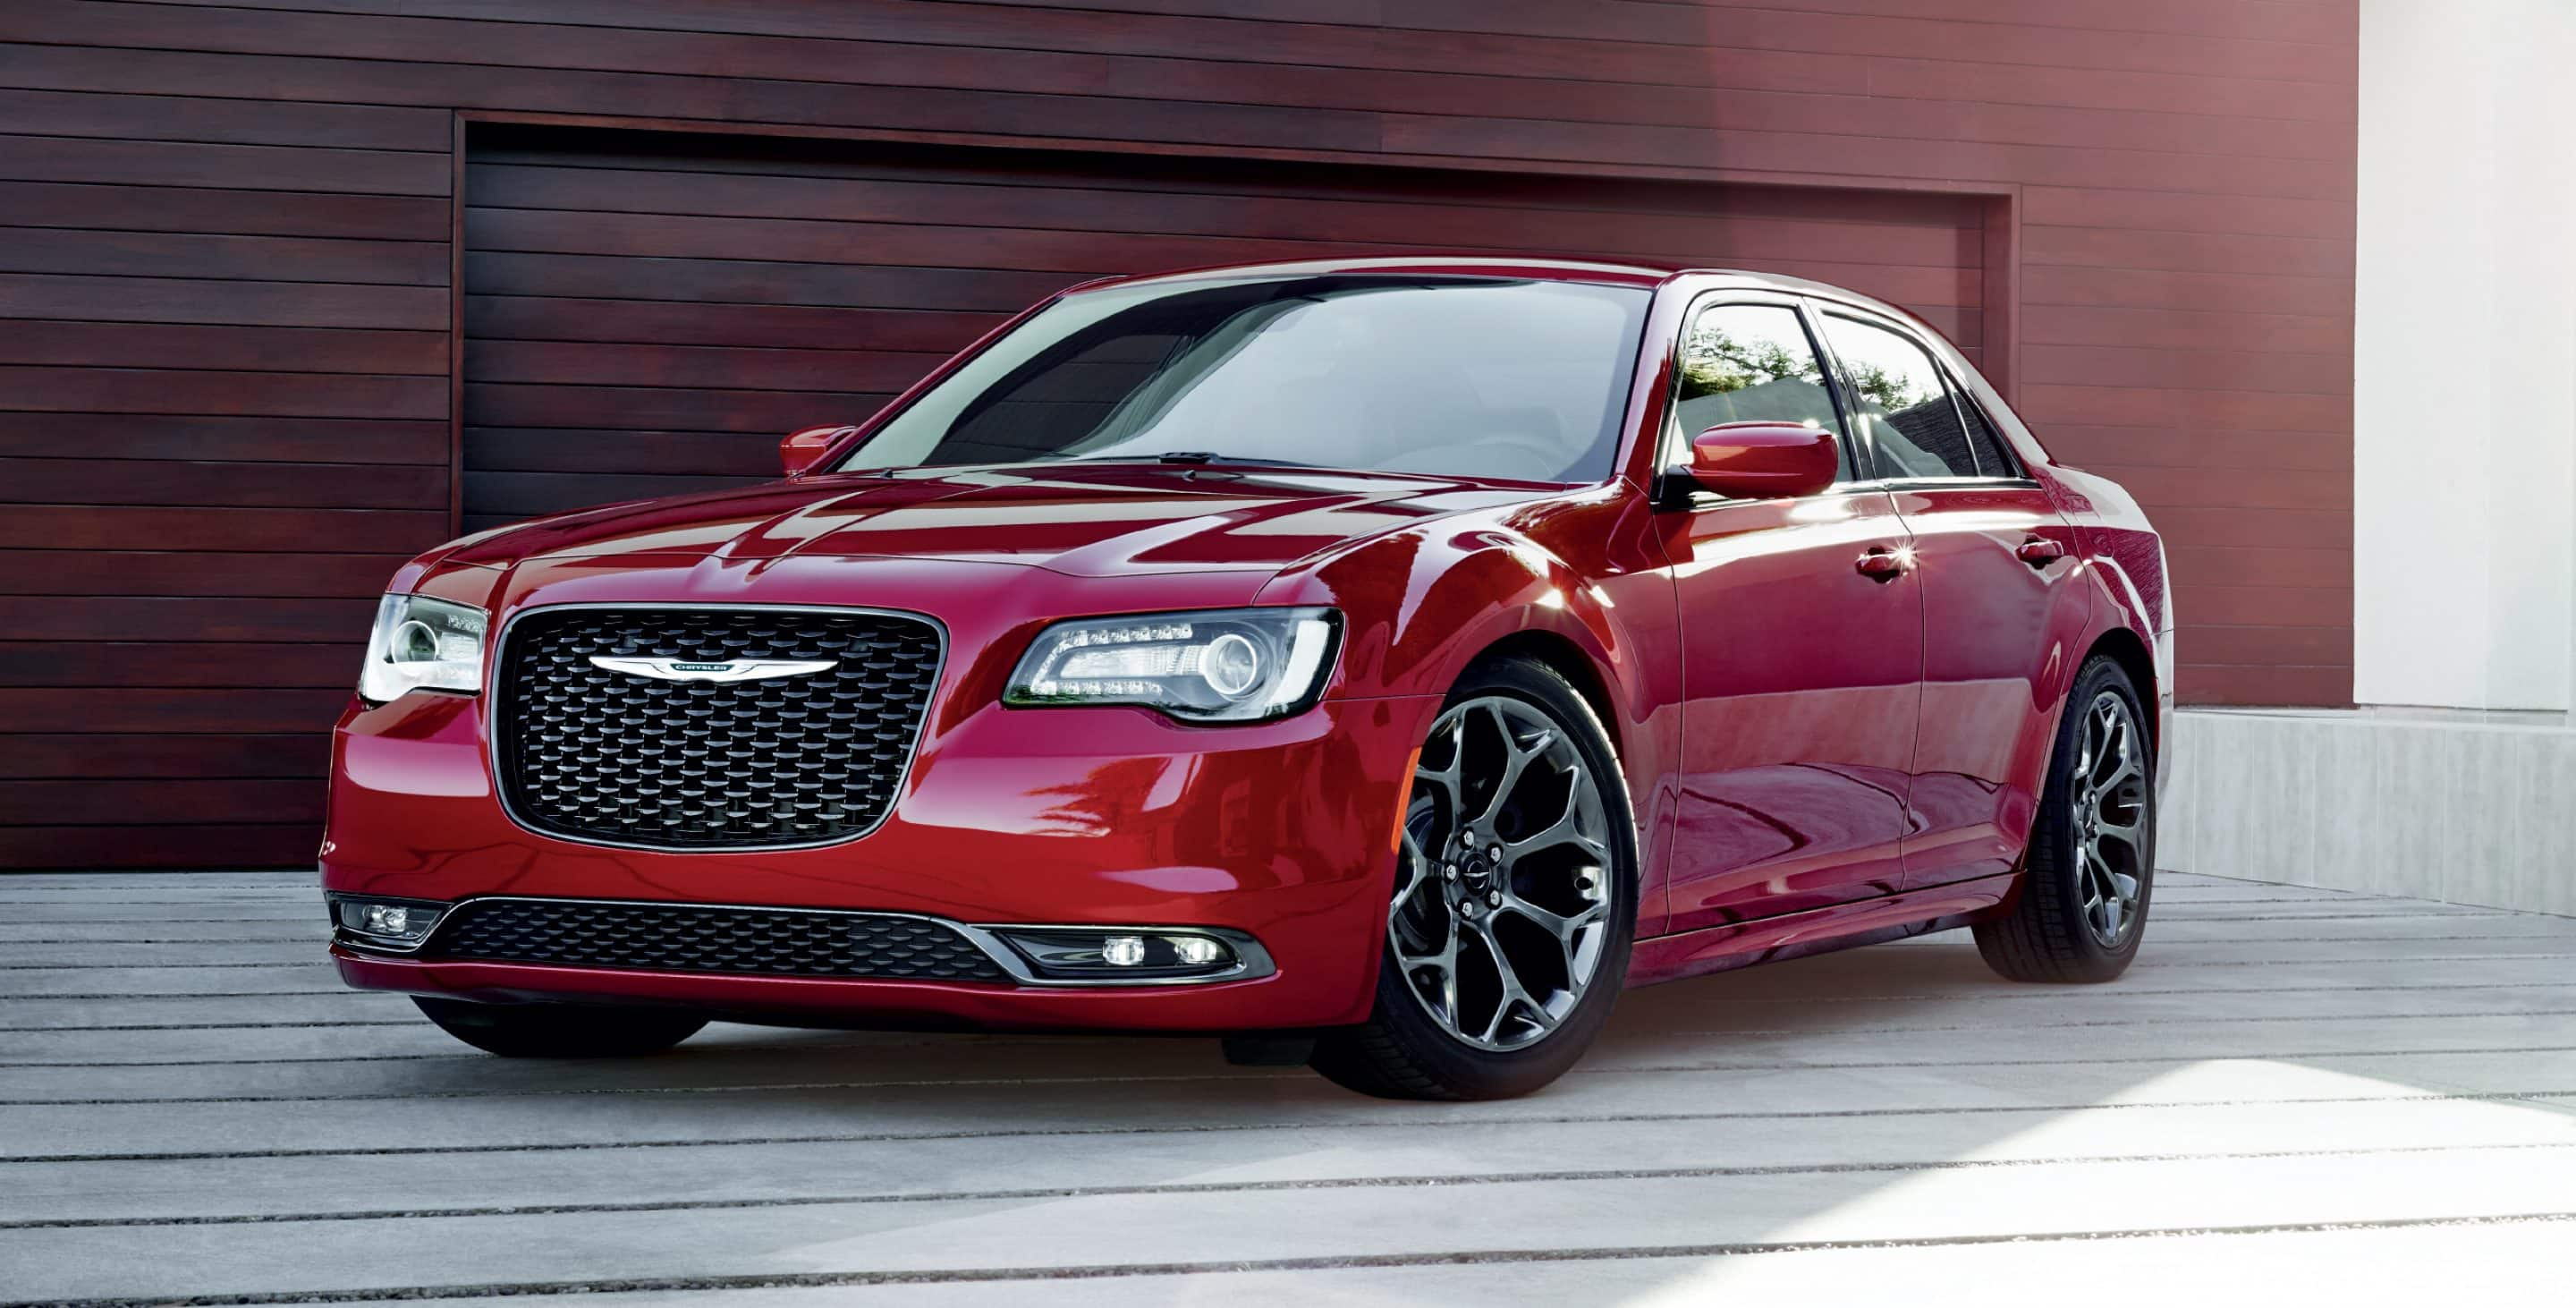 2018 Chrysler 300 - HD Images and PhotosSmall Cars Wallpapers